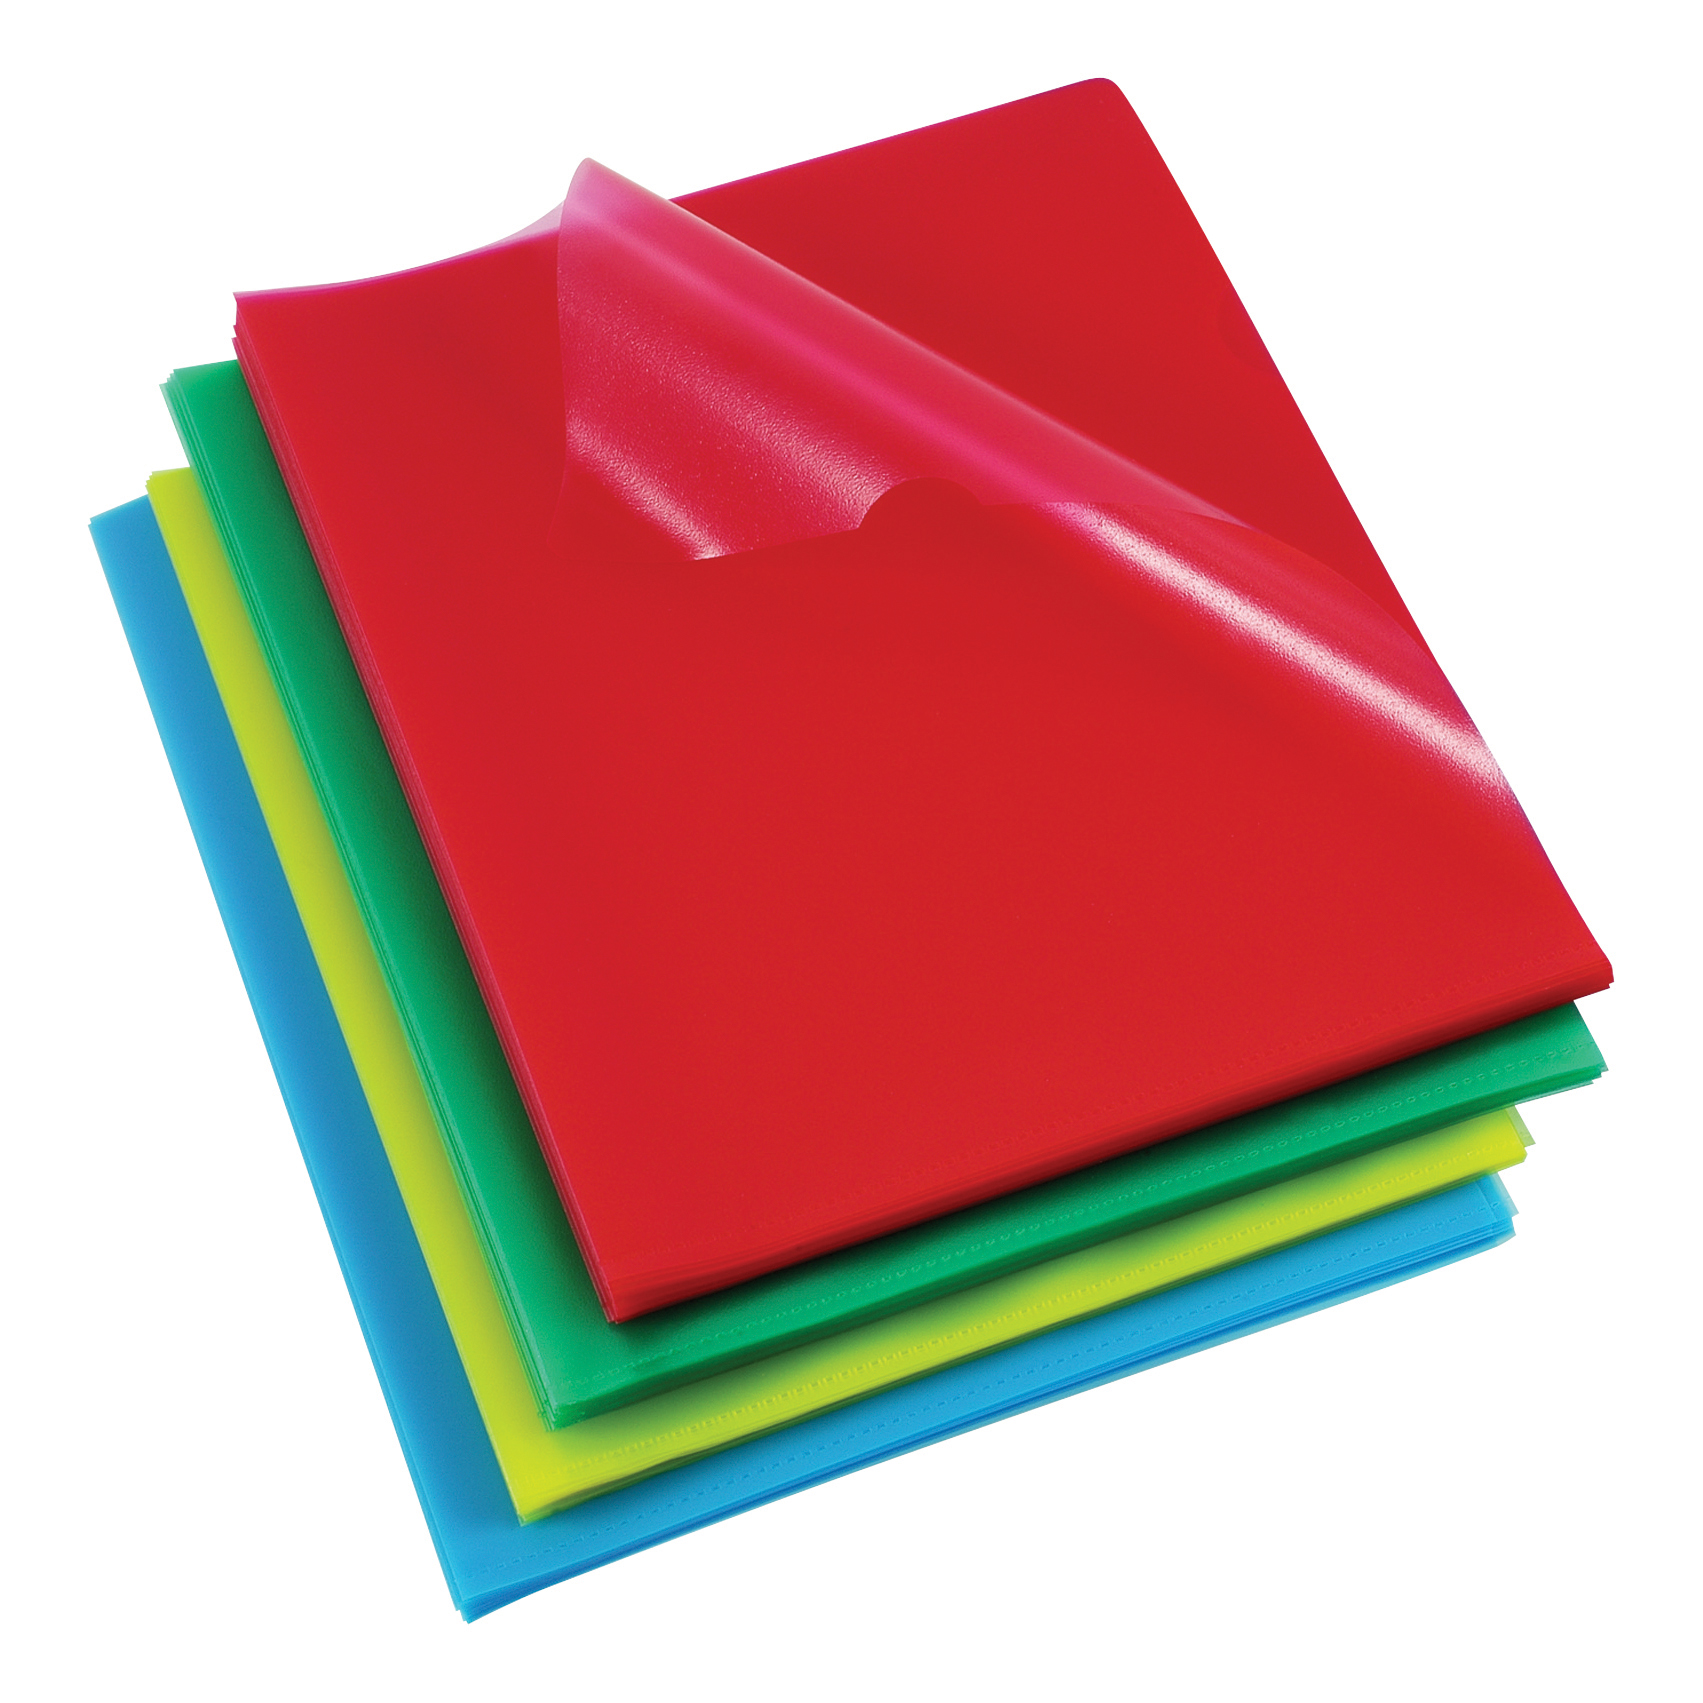 Rexel Cut Flush Folder Polypropylene Copy-secure Embossed Finish A4 Assorted Ref 12216AS Pack 100